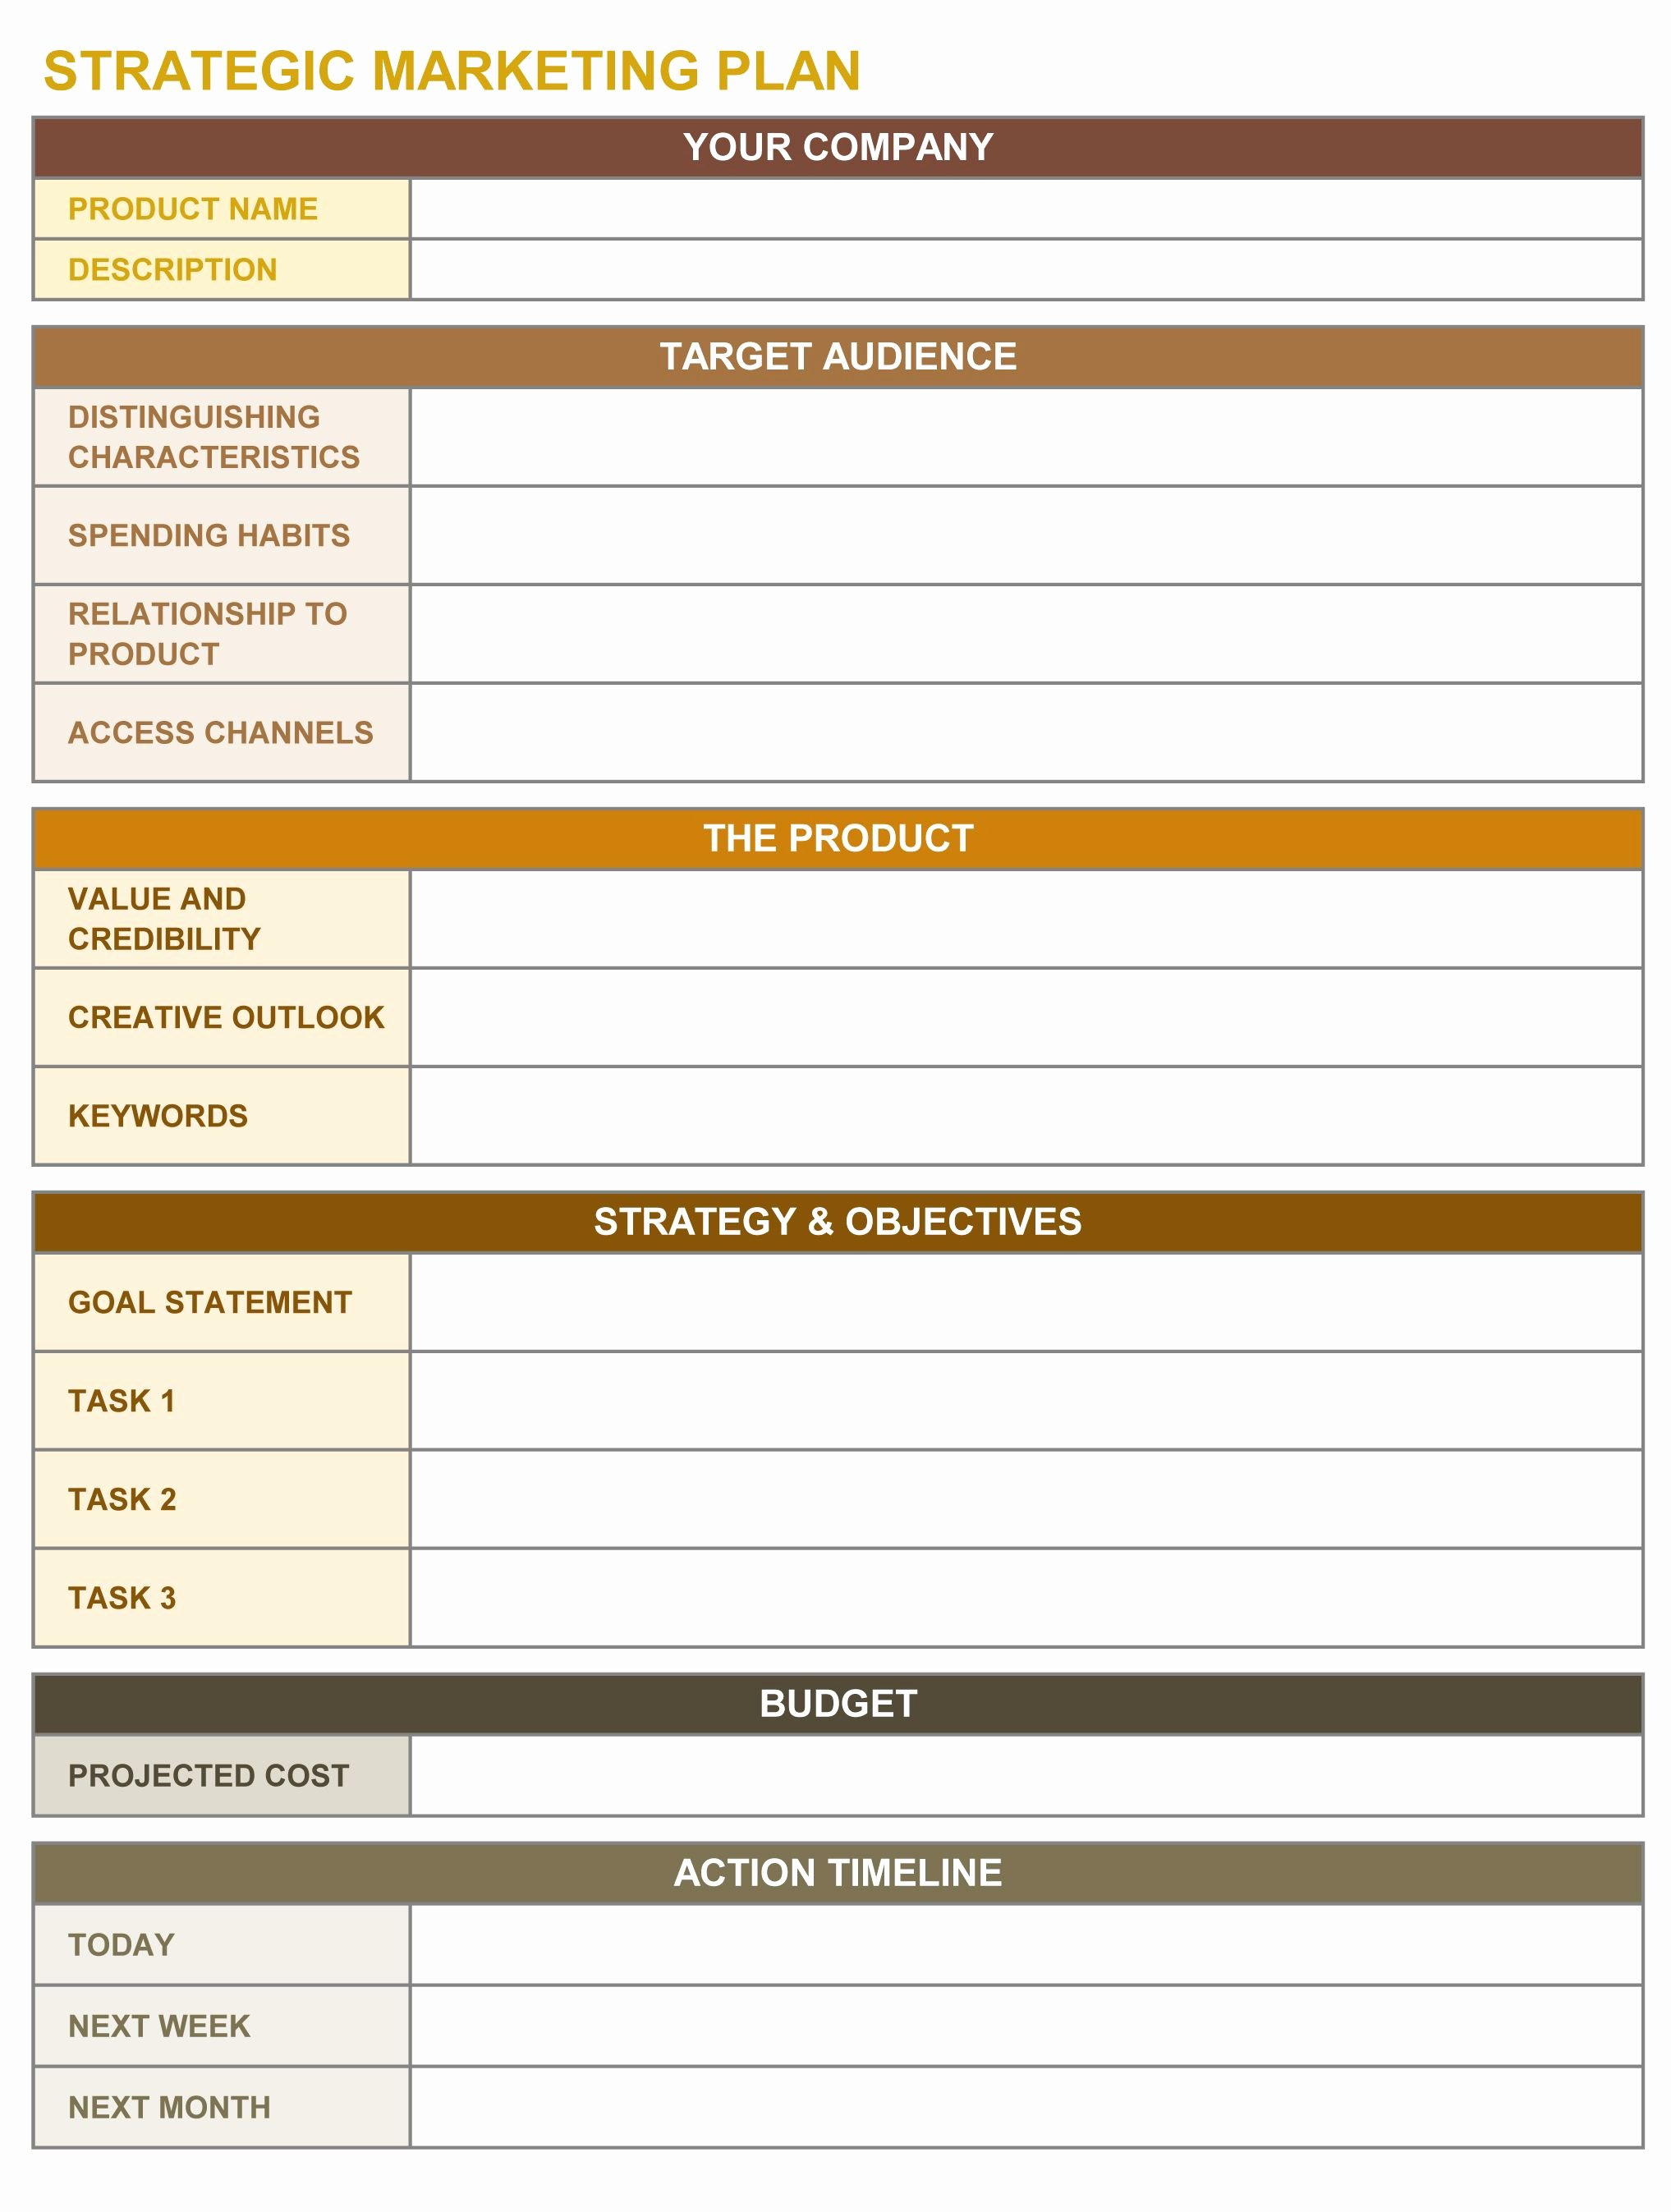 Strategic Plan Template Excel Elegant Strategic Marketing Plan Excel Template